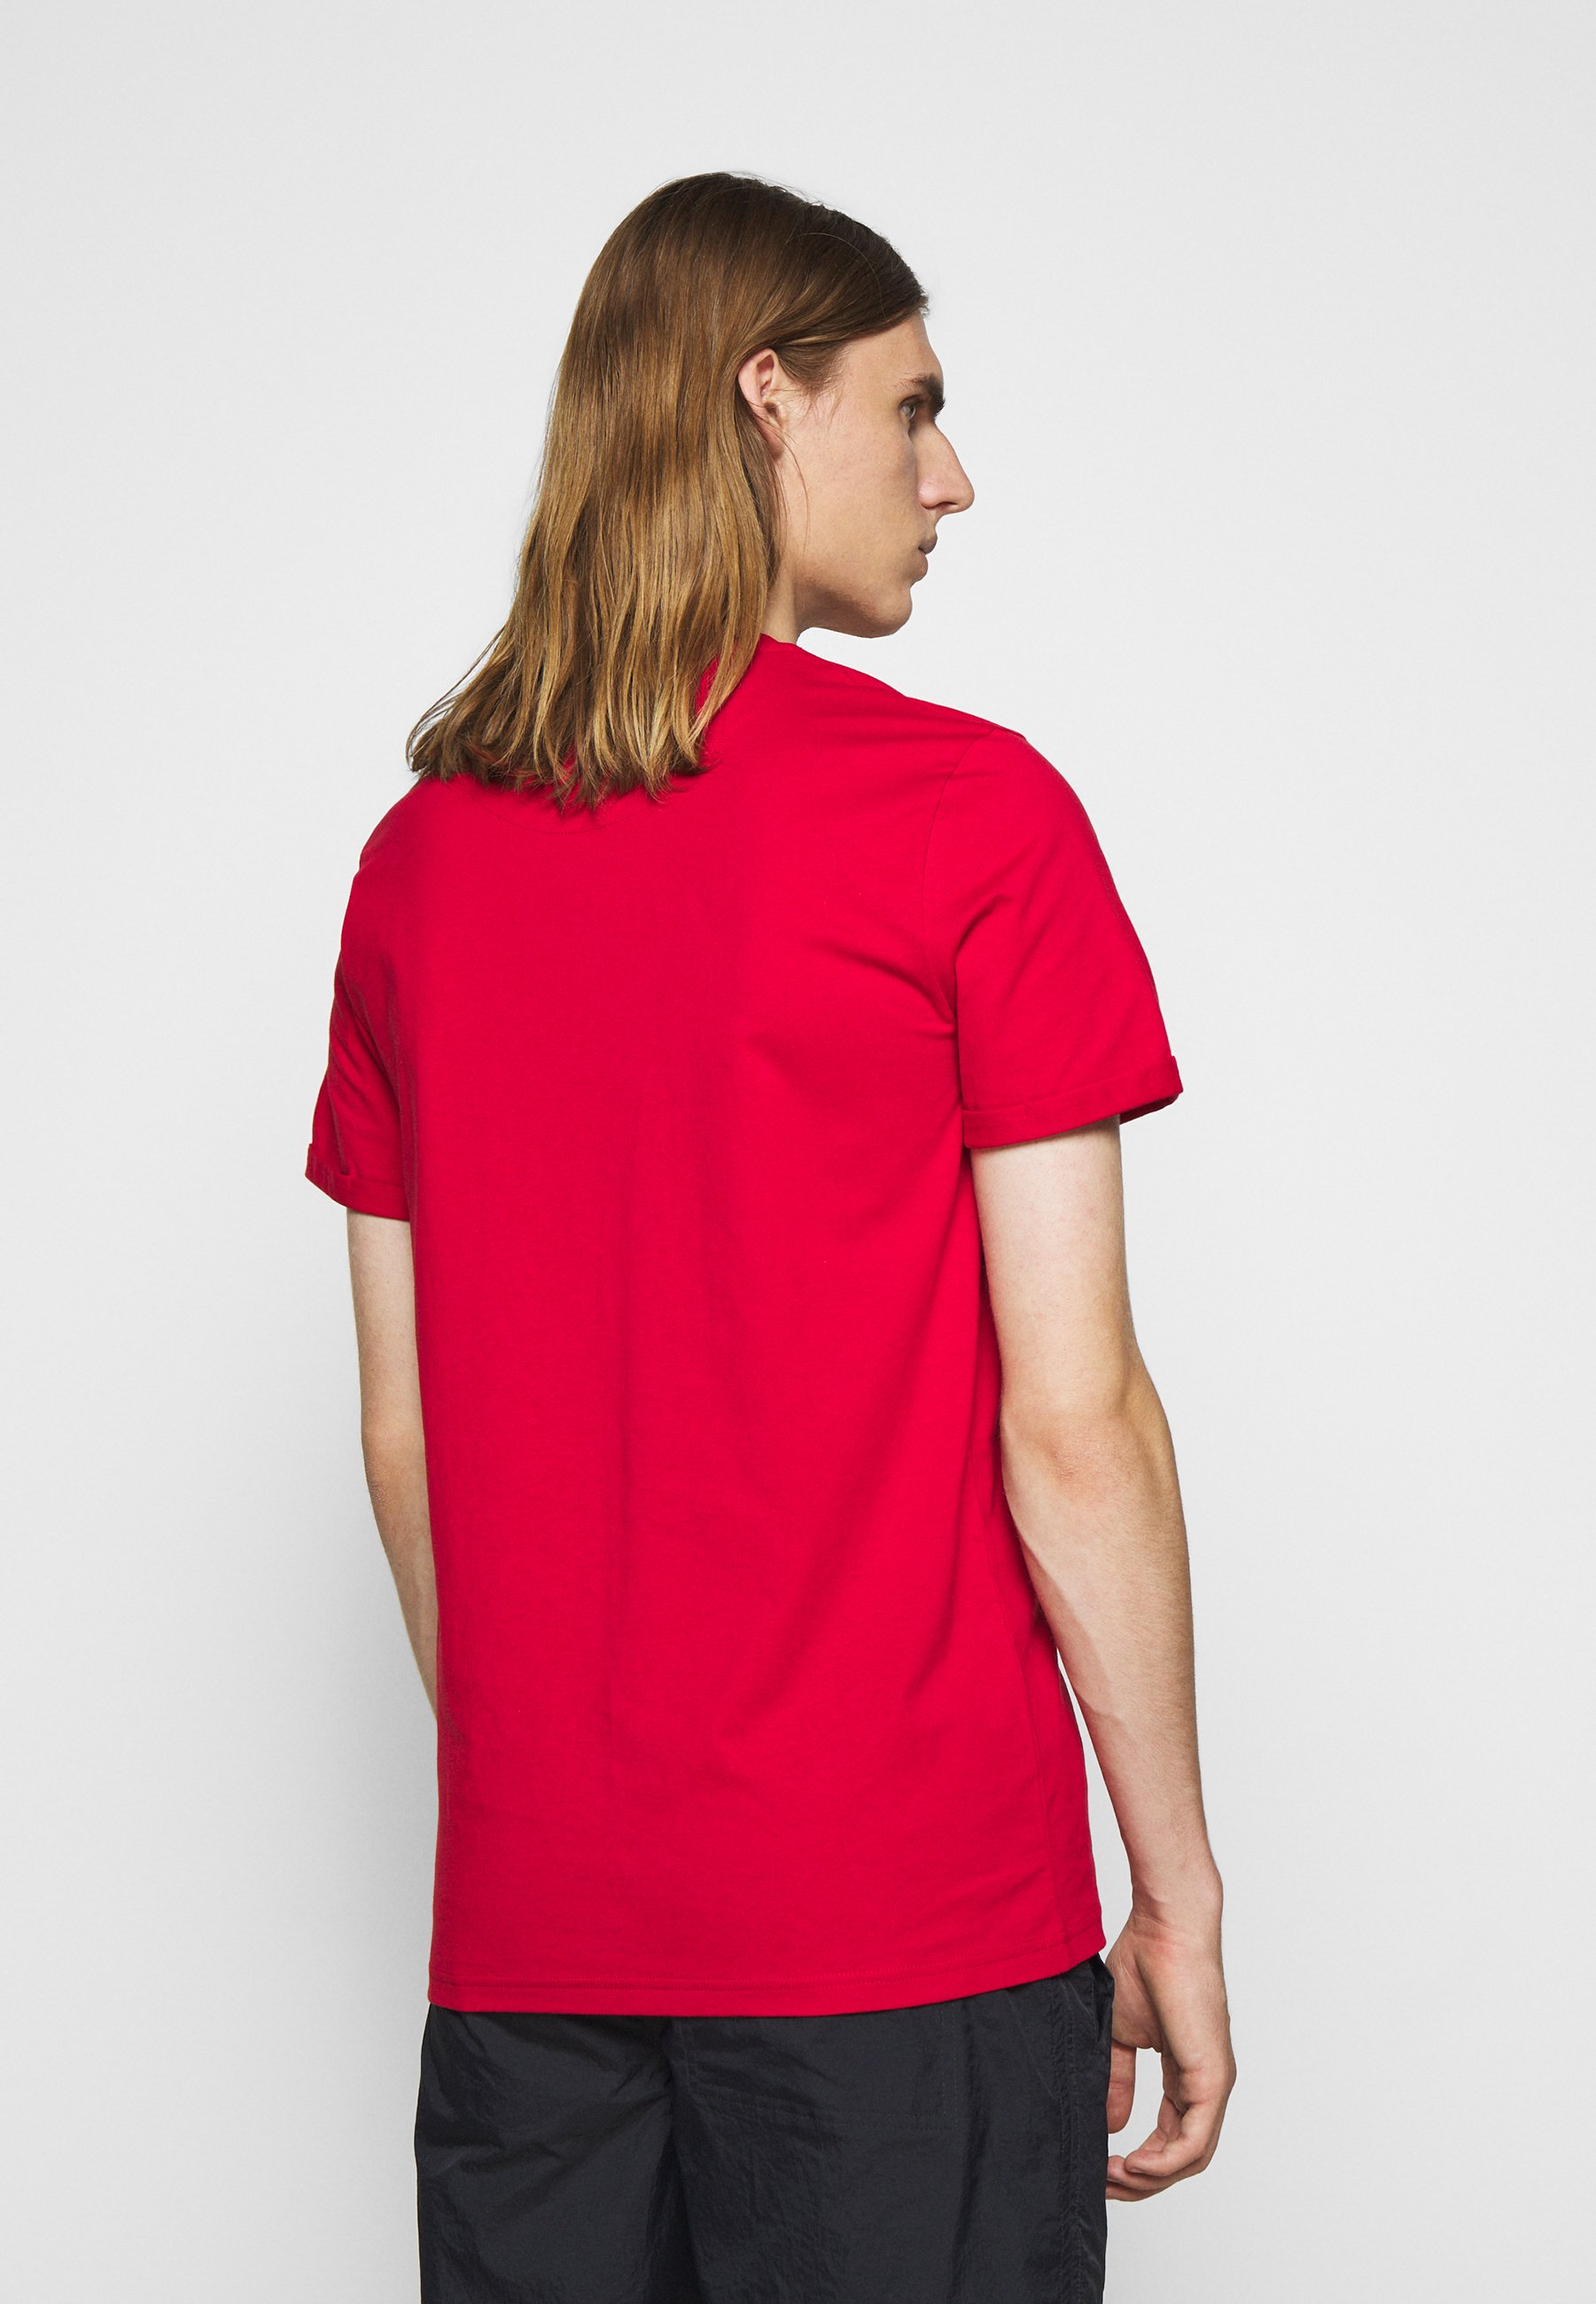 Les Deux LENS - T-Shirt basic - red/black/rot - Herrenbekleidung e4W3P